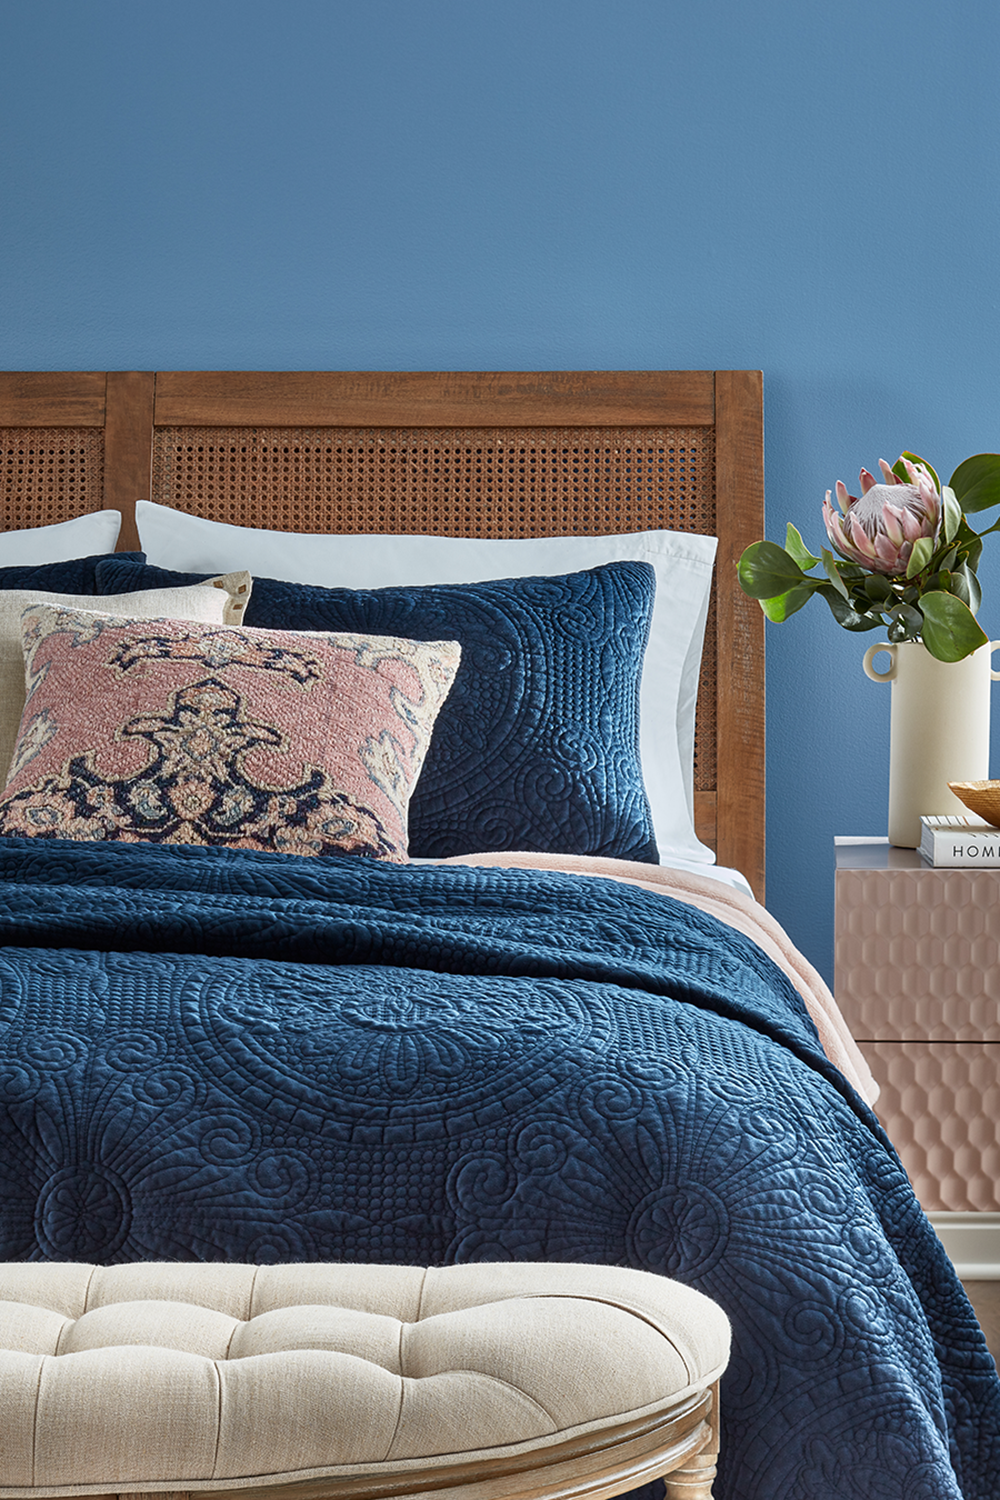 Introducing our 2020 Color Collection of the Year, Simply